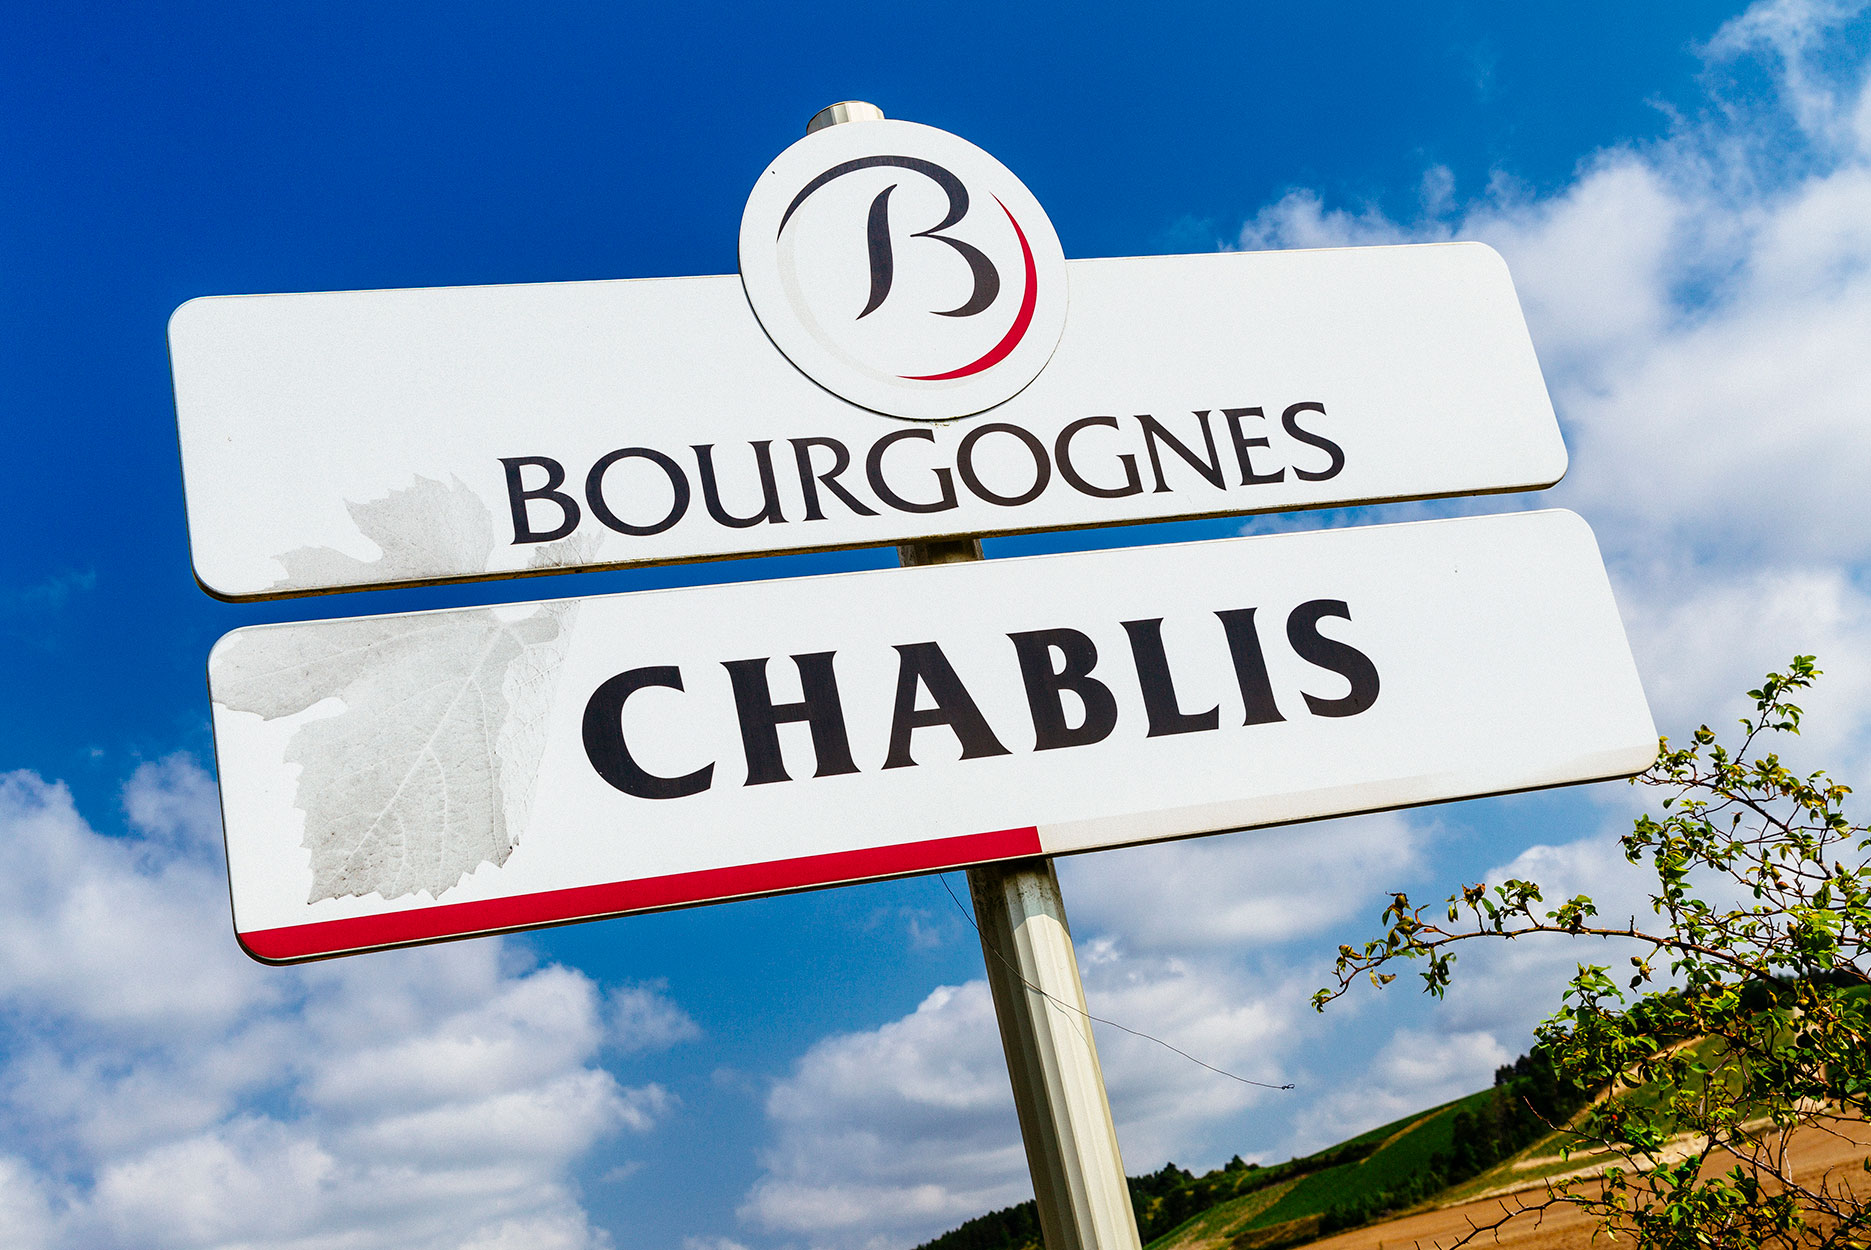 Road sign for Chablis, France